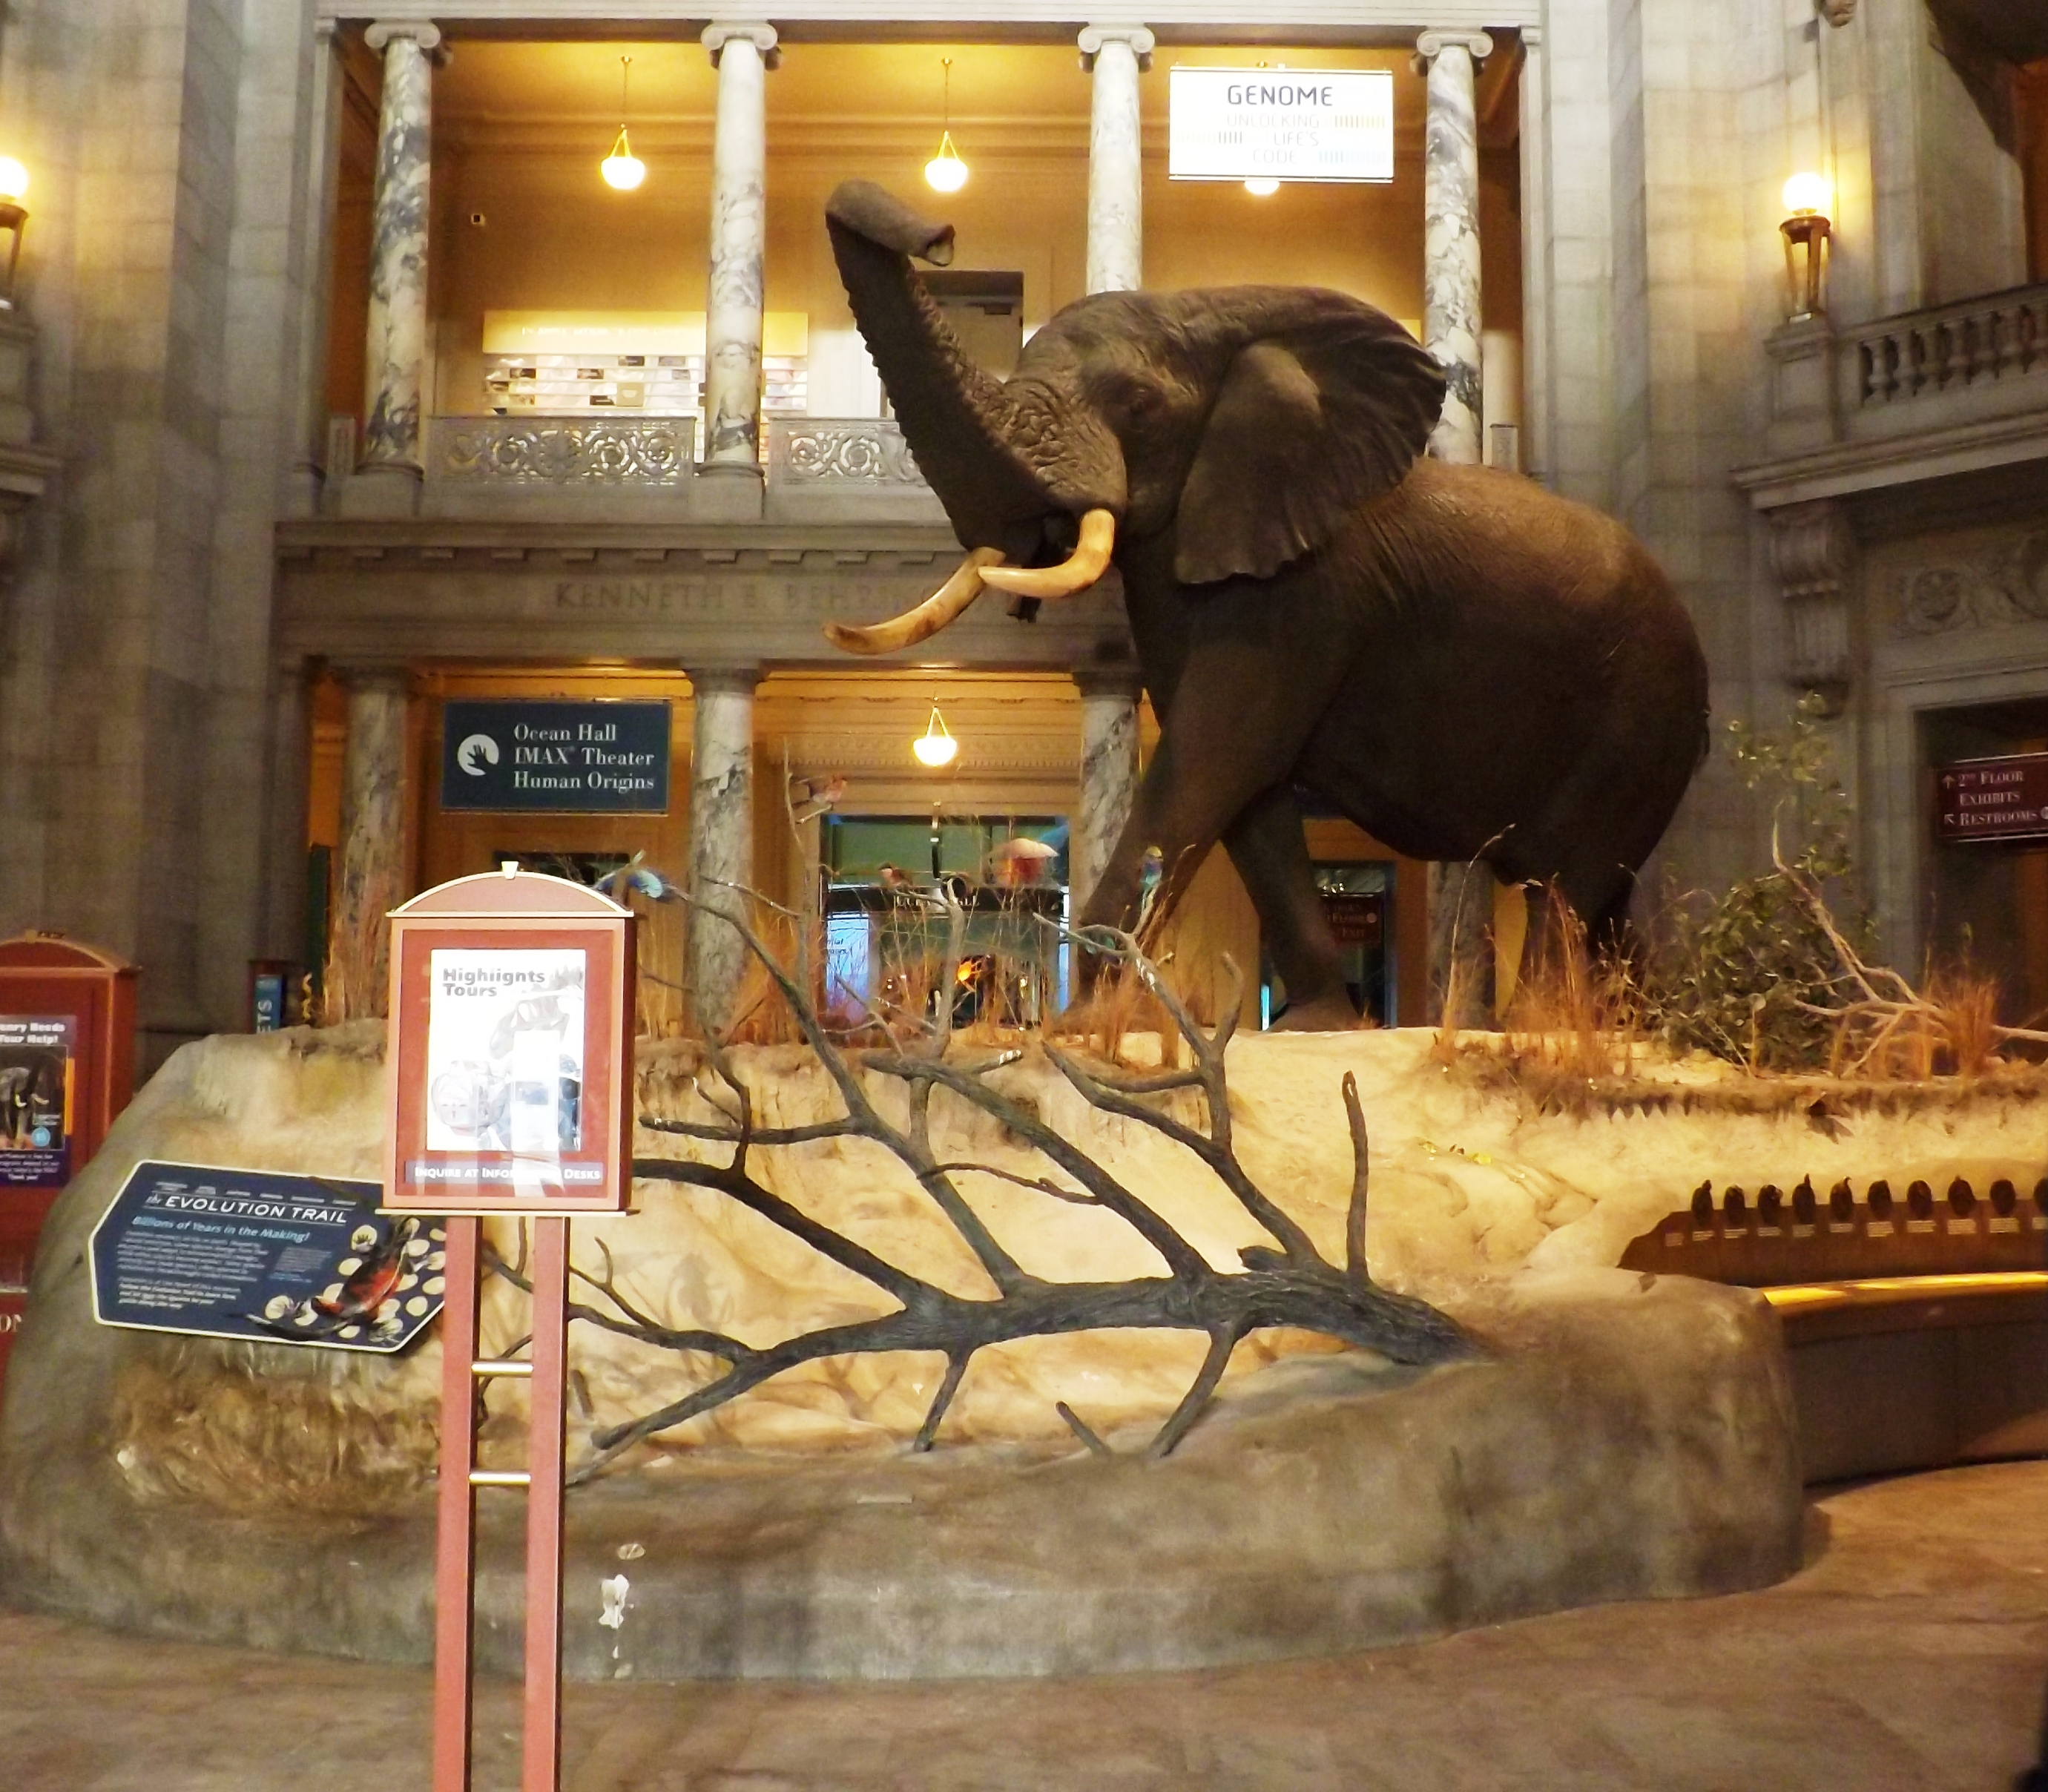 Figure 2. The Smithsonian Institution's Museum of Natural History entrance hall with Henry the elephant. 2014.